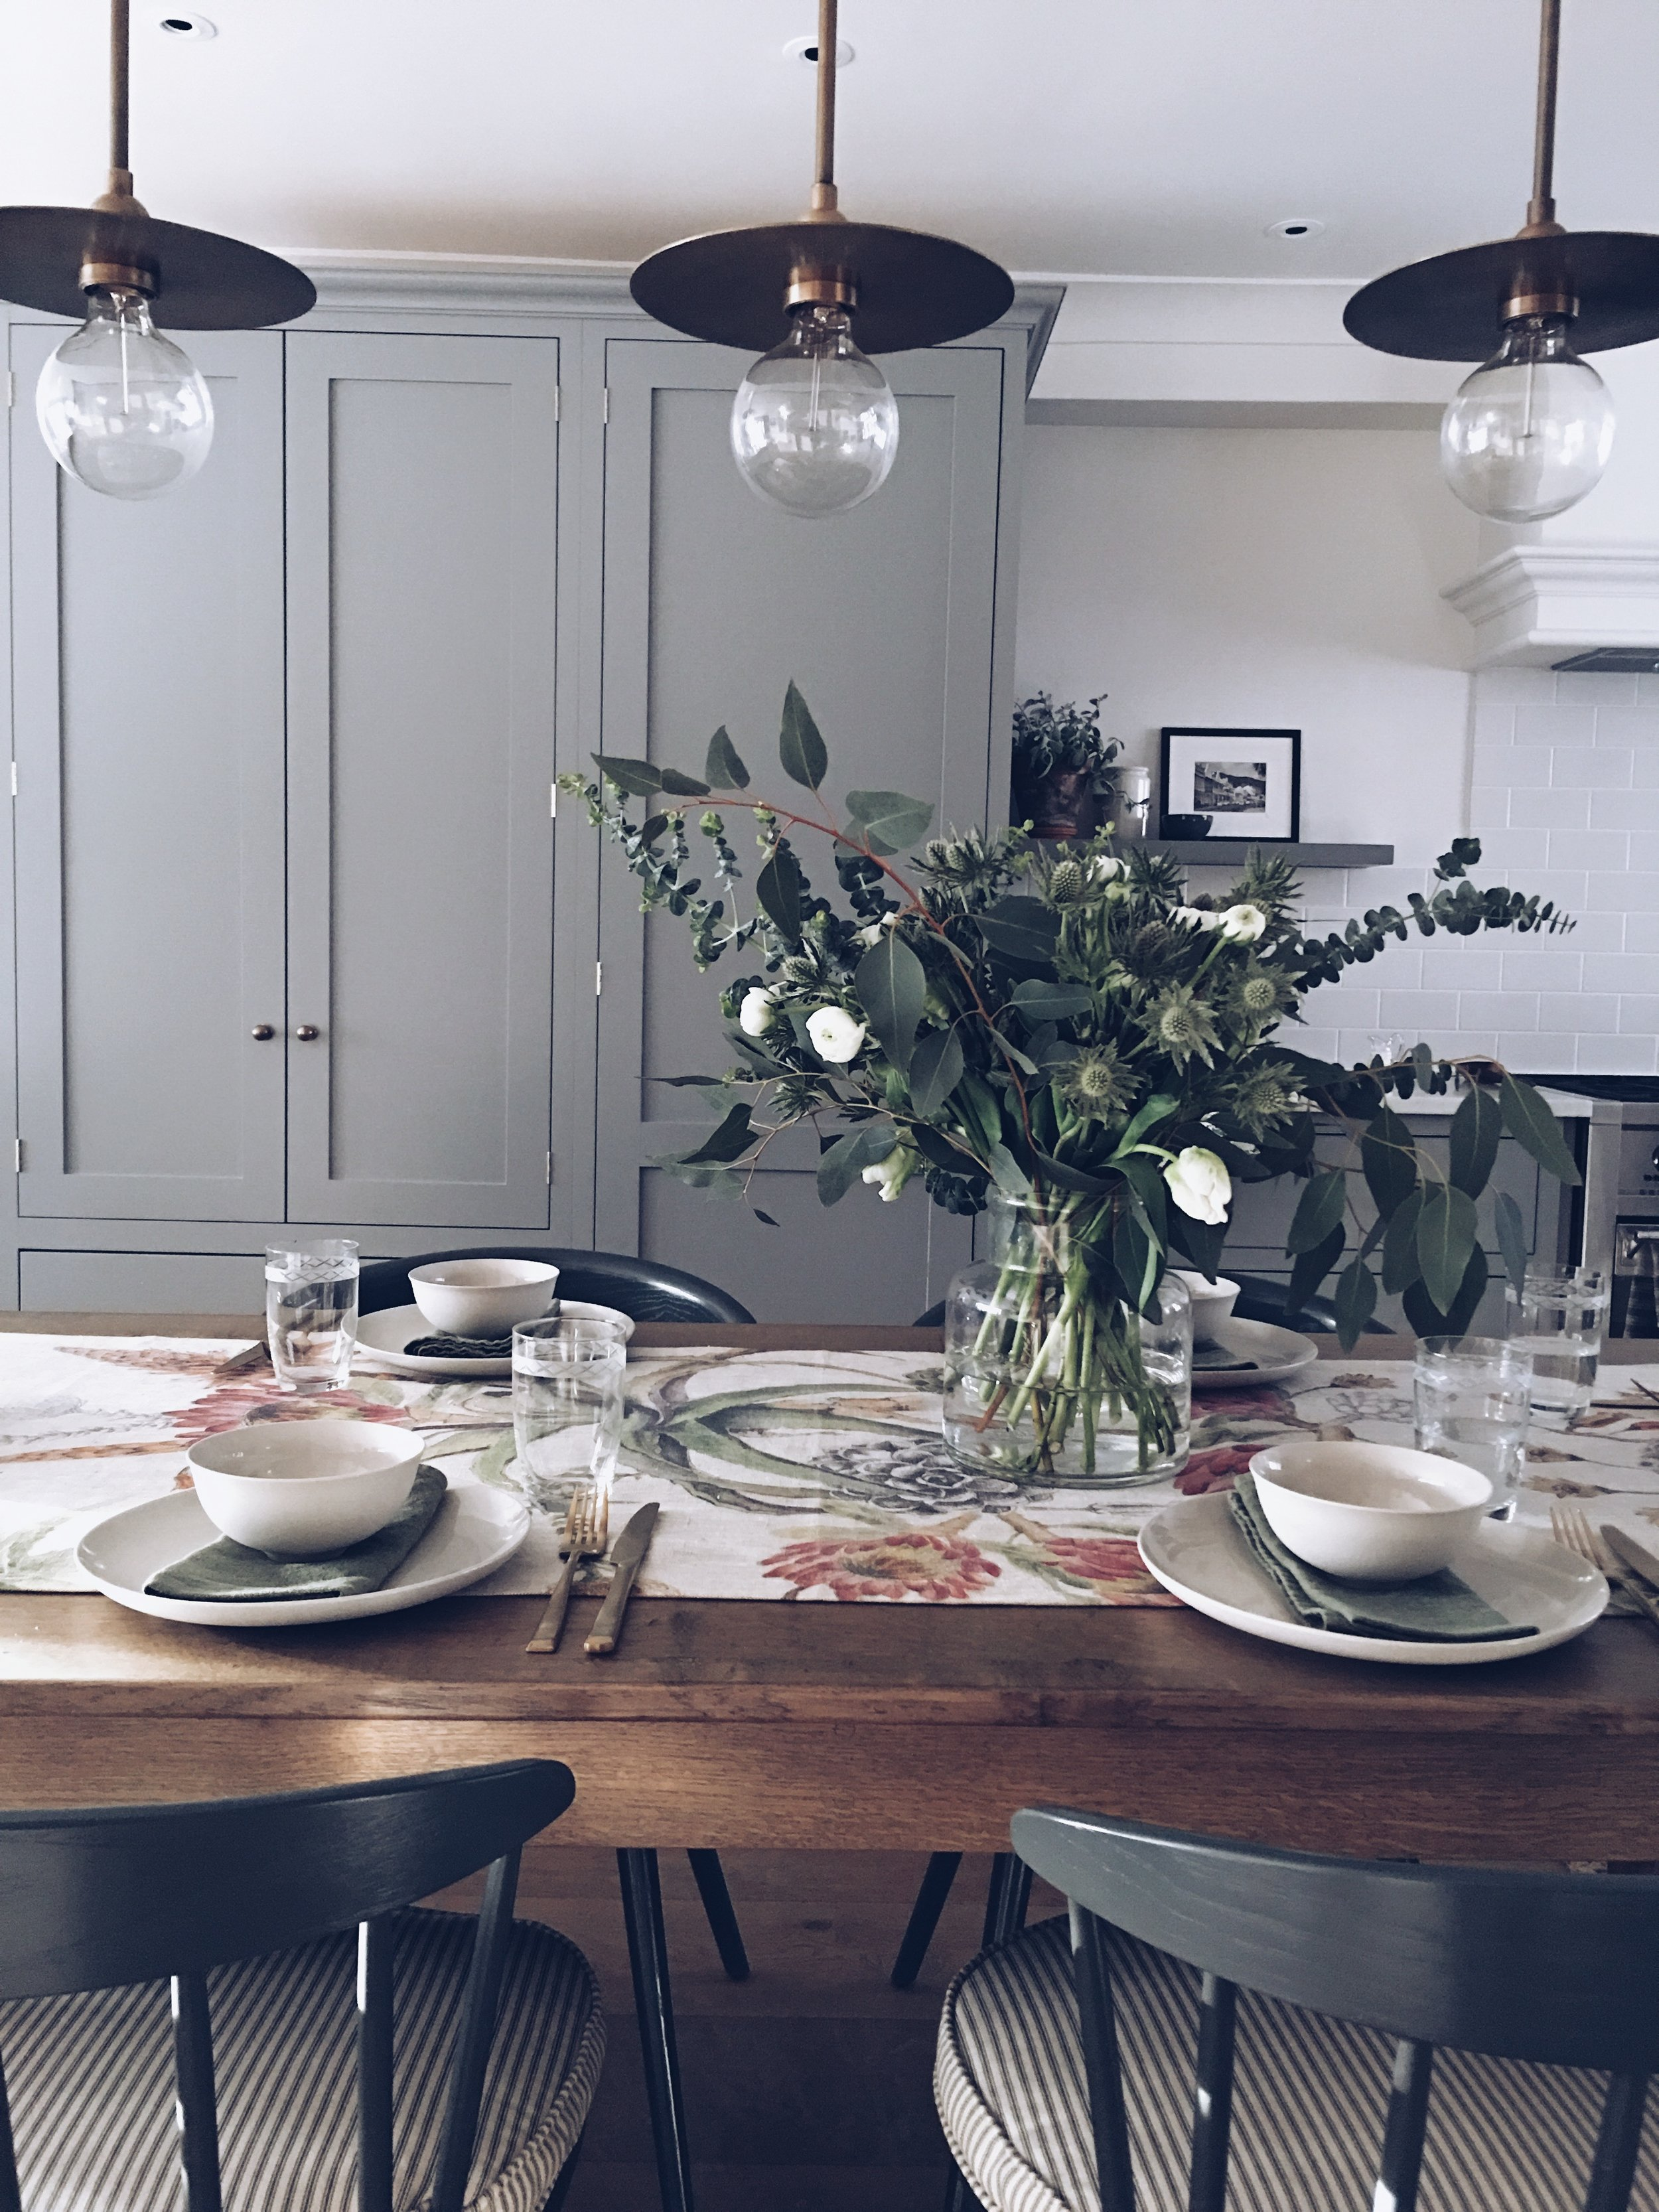 Kitchen and table setting